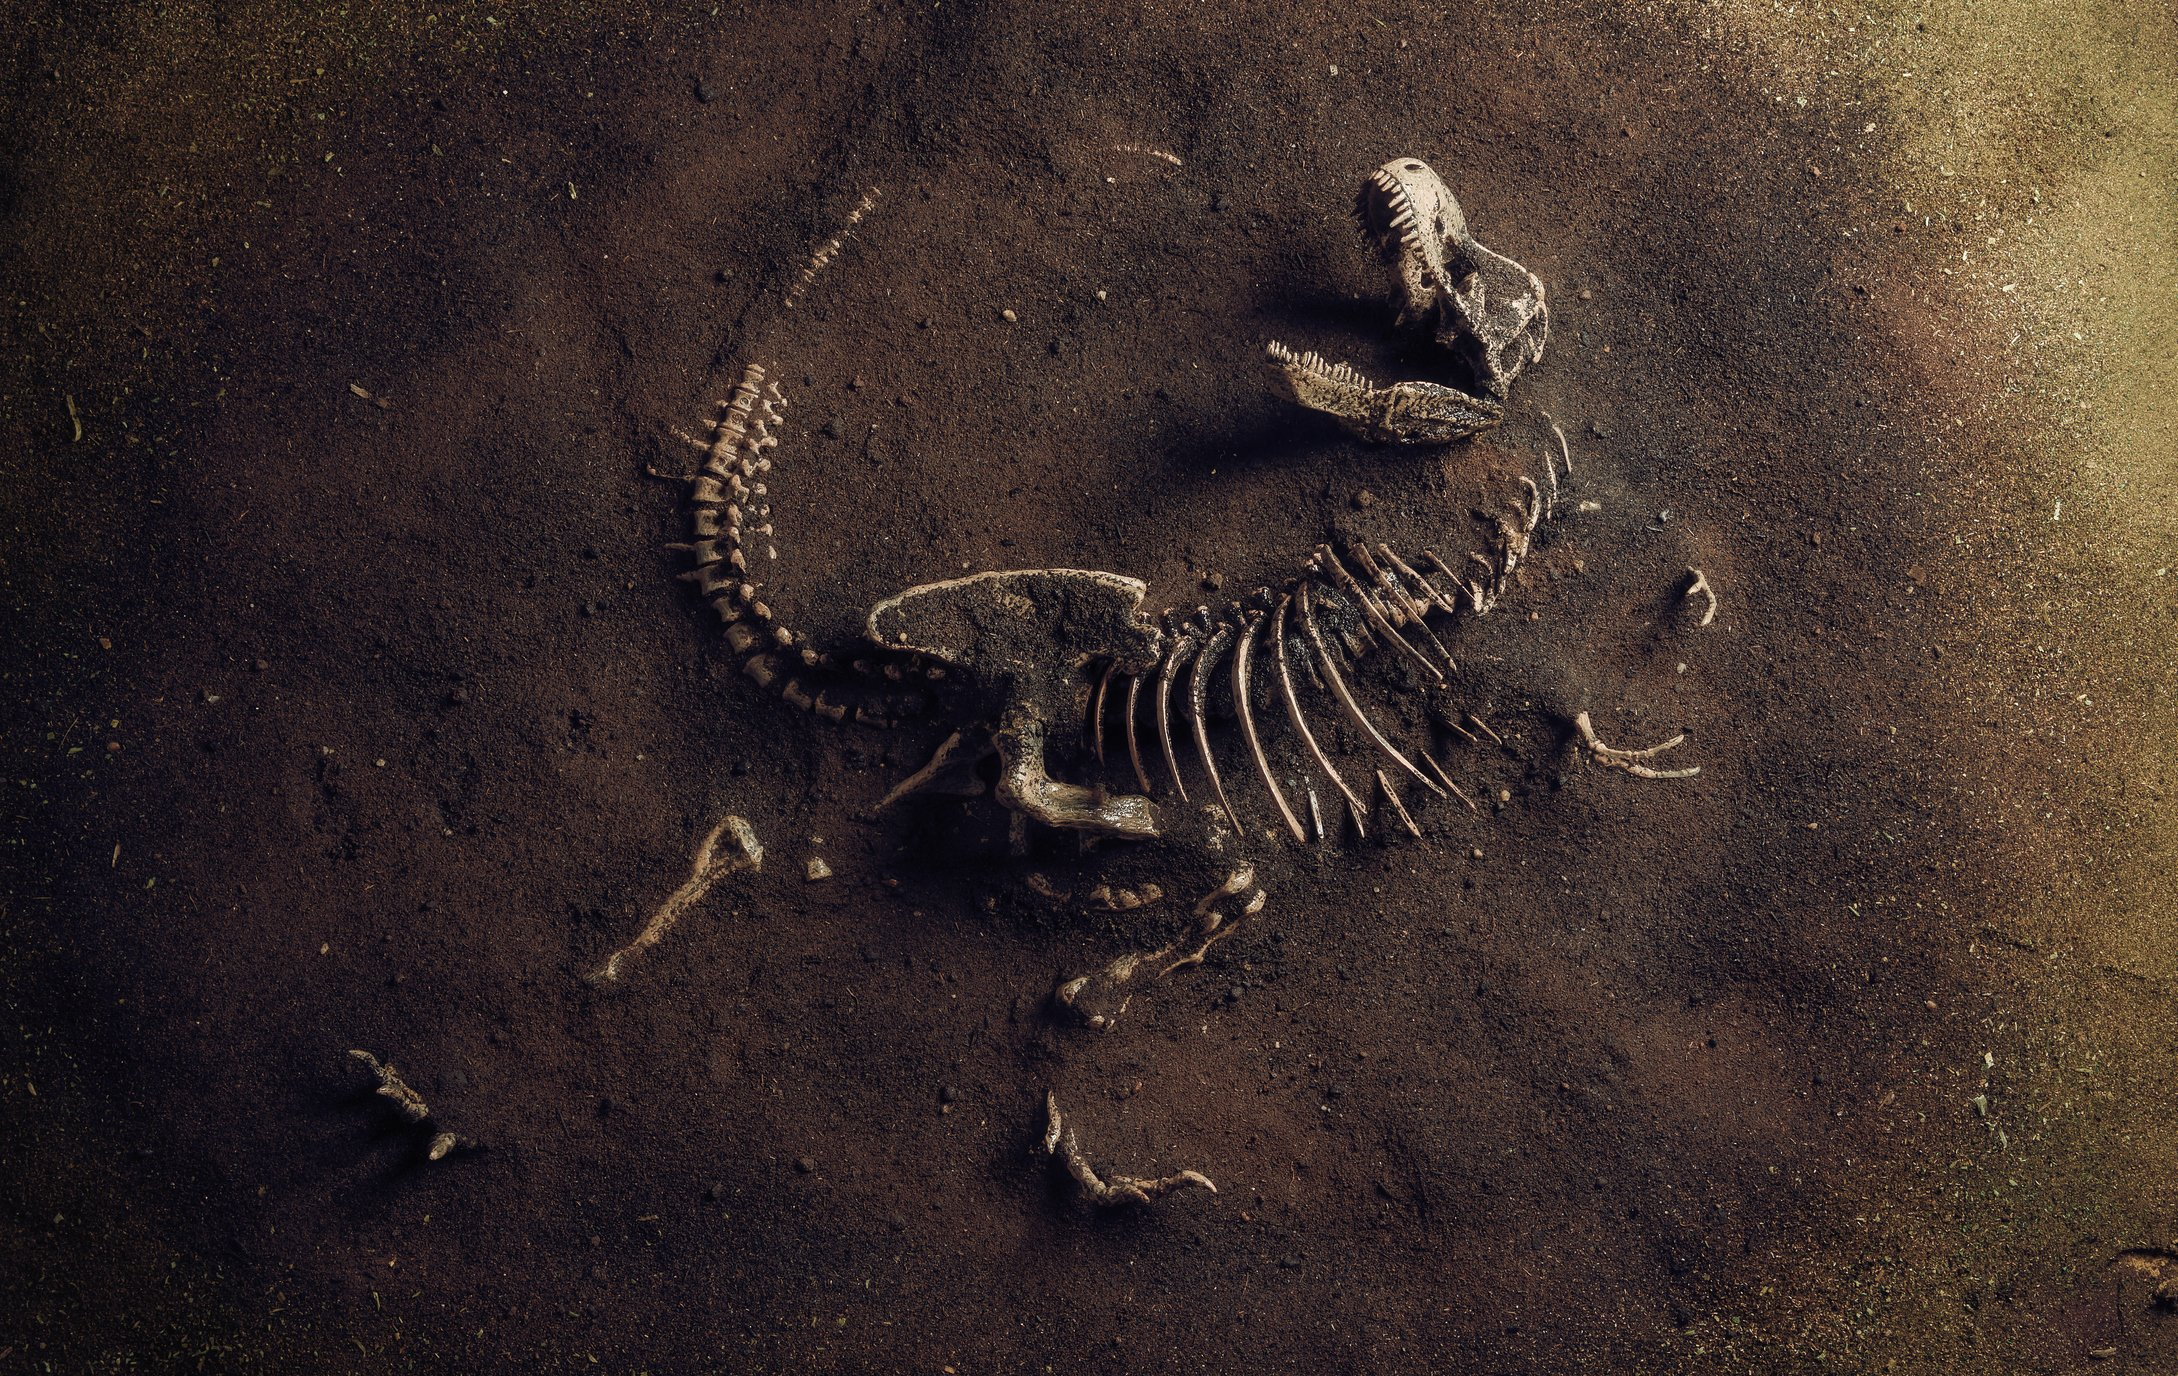 This was a very bad day for the dinosaurs, including this Tyrannosaurus rex. (iStock Photo)